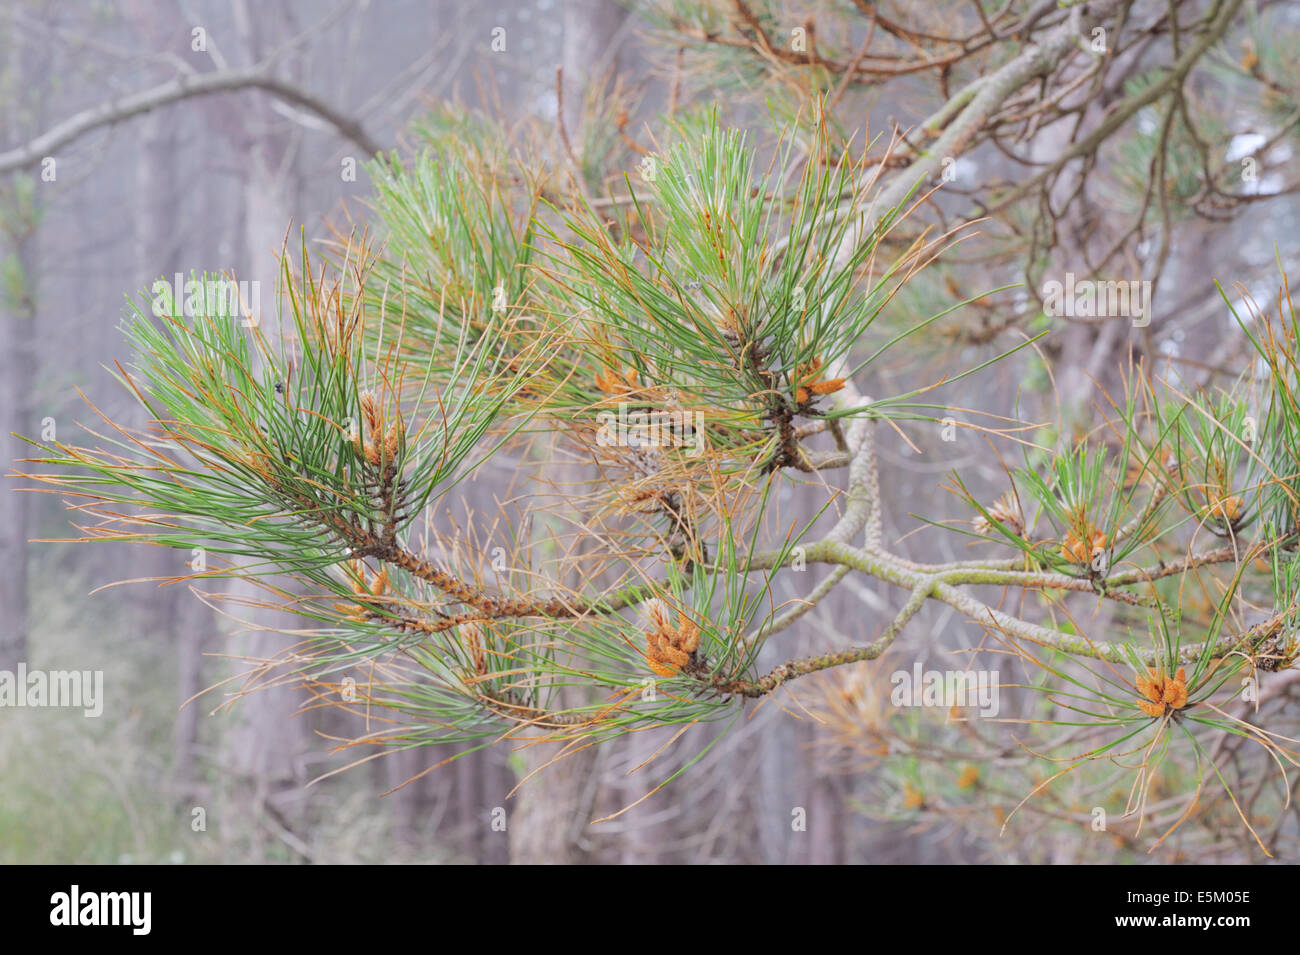 Dying pine needles, signs of Dothistroma Needle Blight or Red Band Needle Blight caused by fungus Dothistroma septosporum, - Stock Image